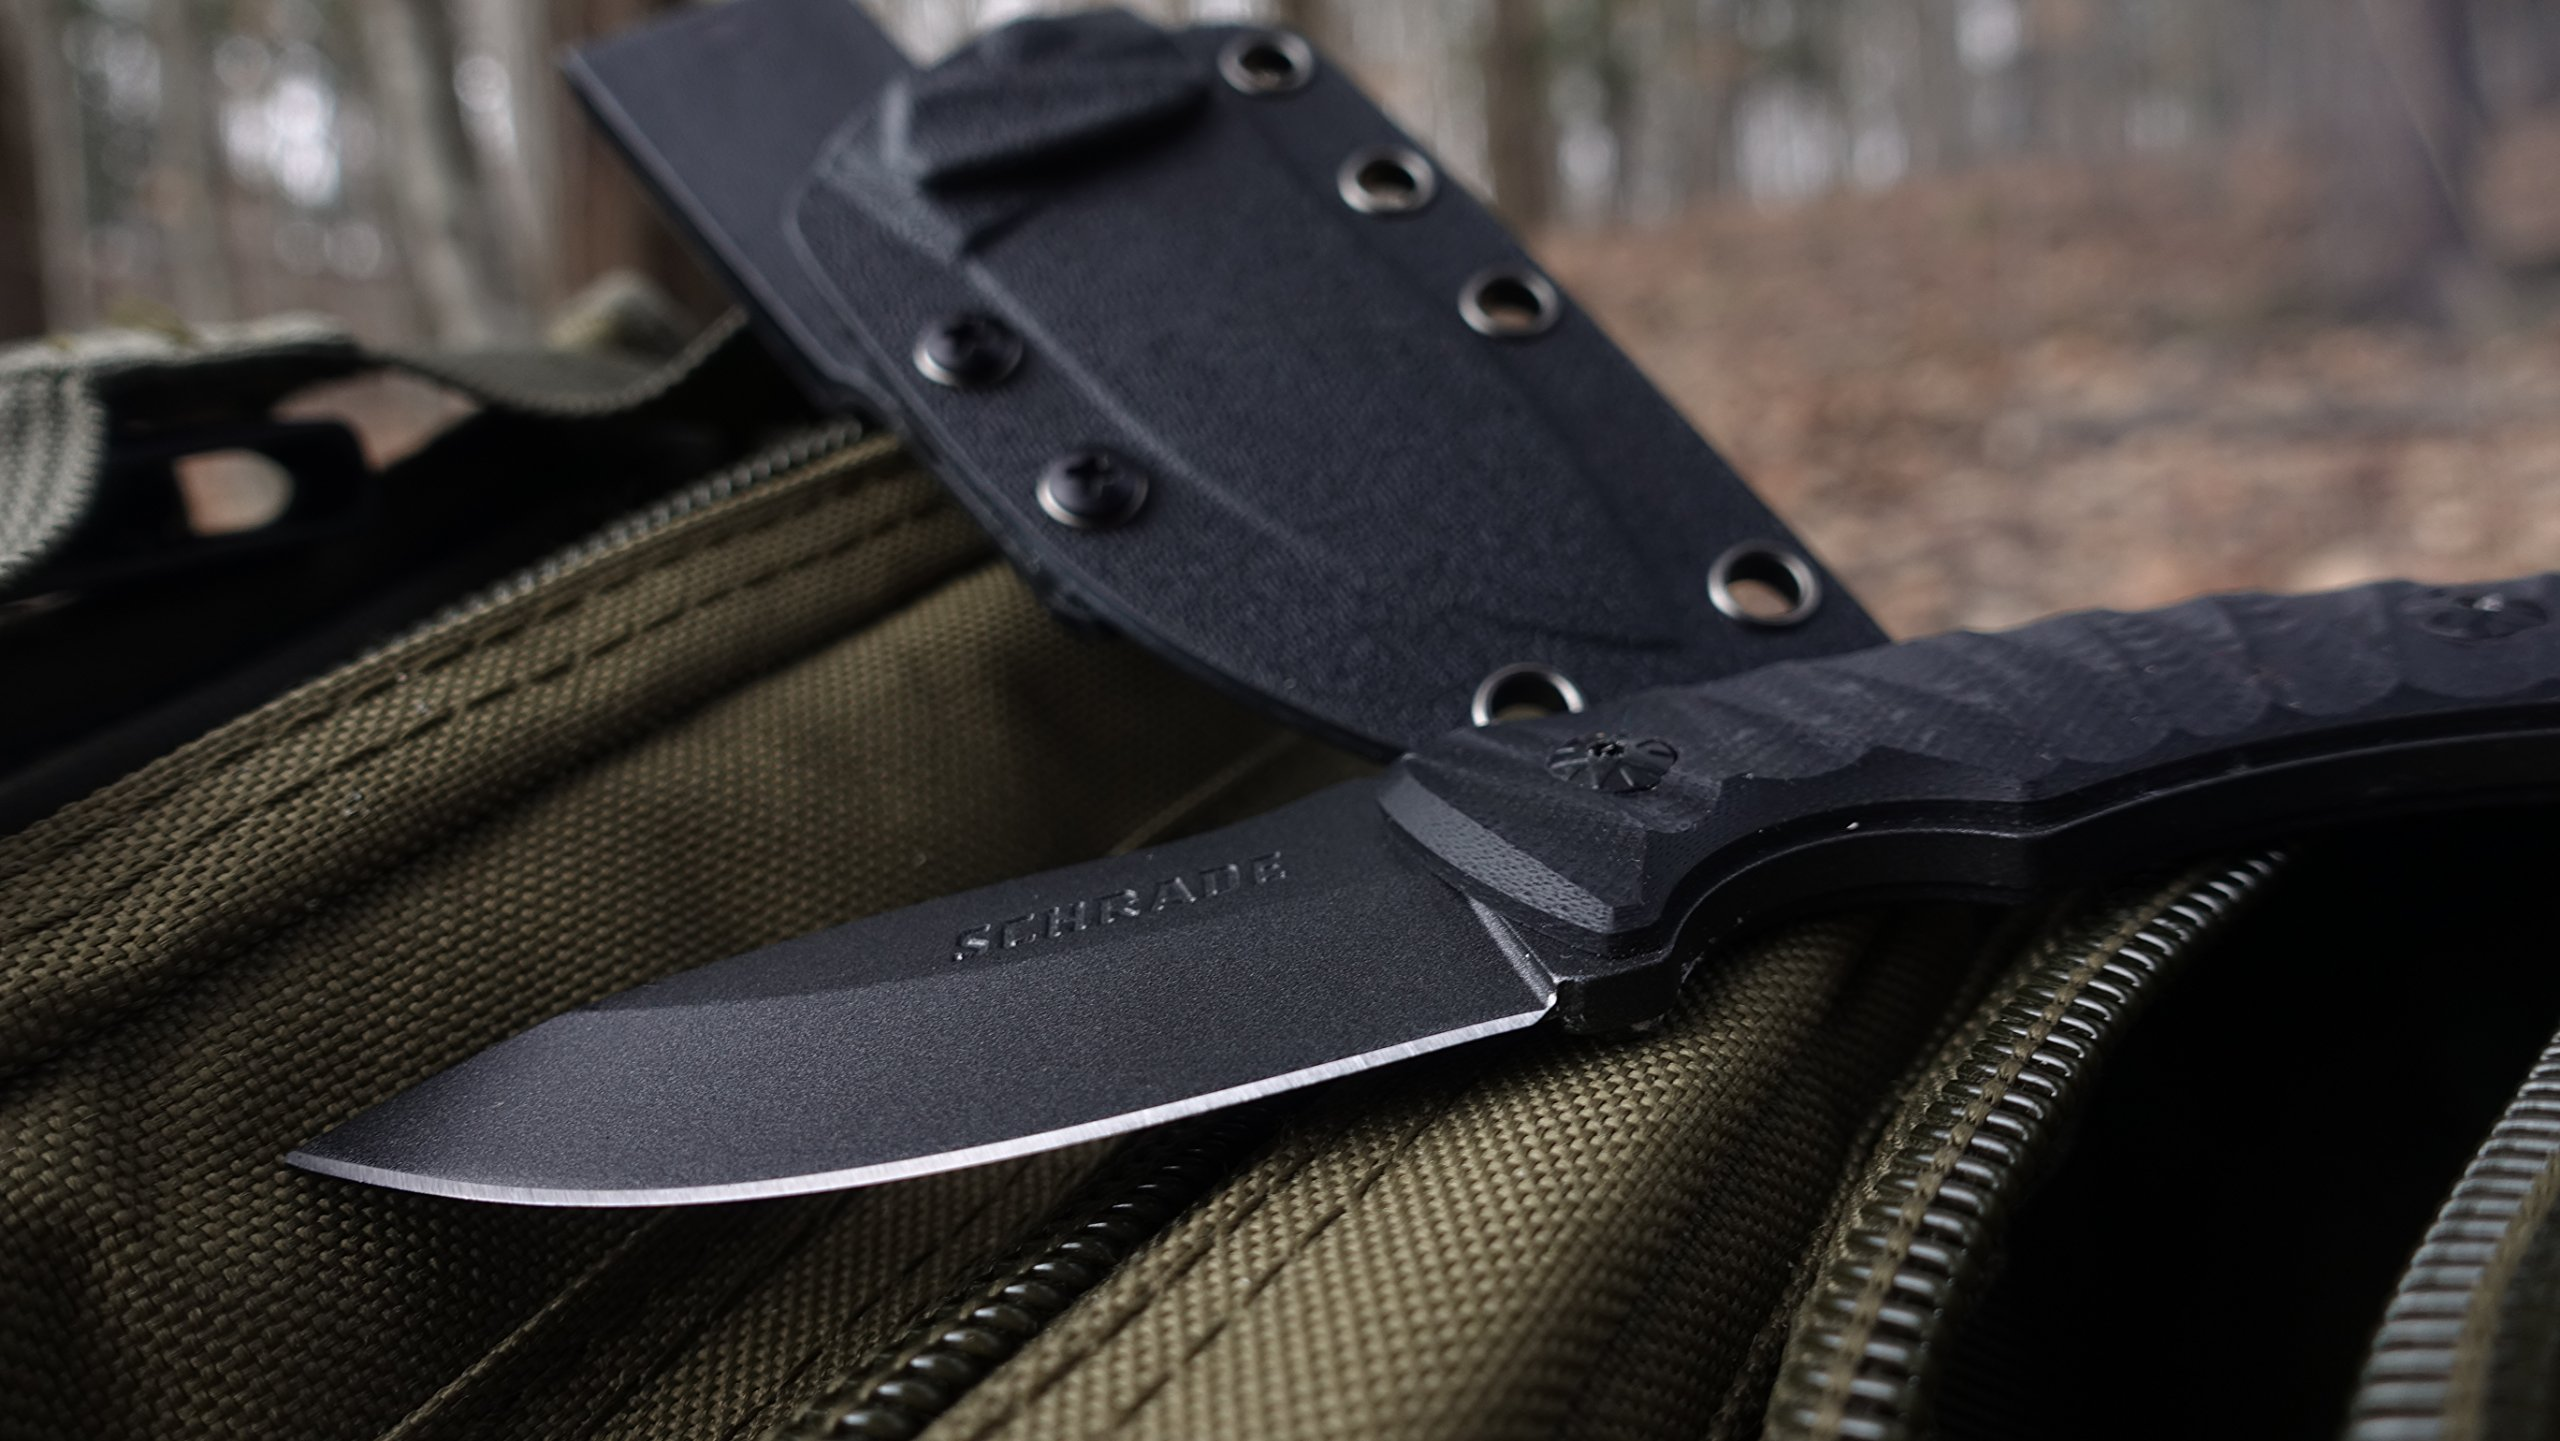 Schrade SCHF57 6.3in Steel Full Tang Fixed Blade Knife with 2.6in Drop Point Blade and G-10 Handle for Outdoor Survival Camping and Everyday Carry by Schrade (Image #5)